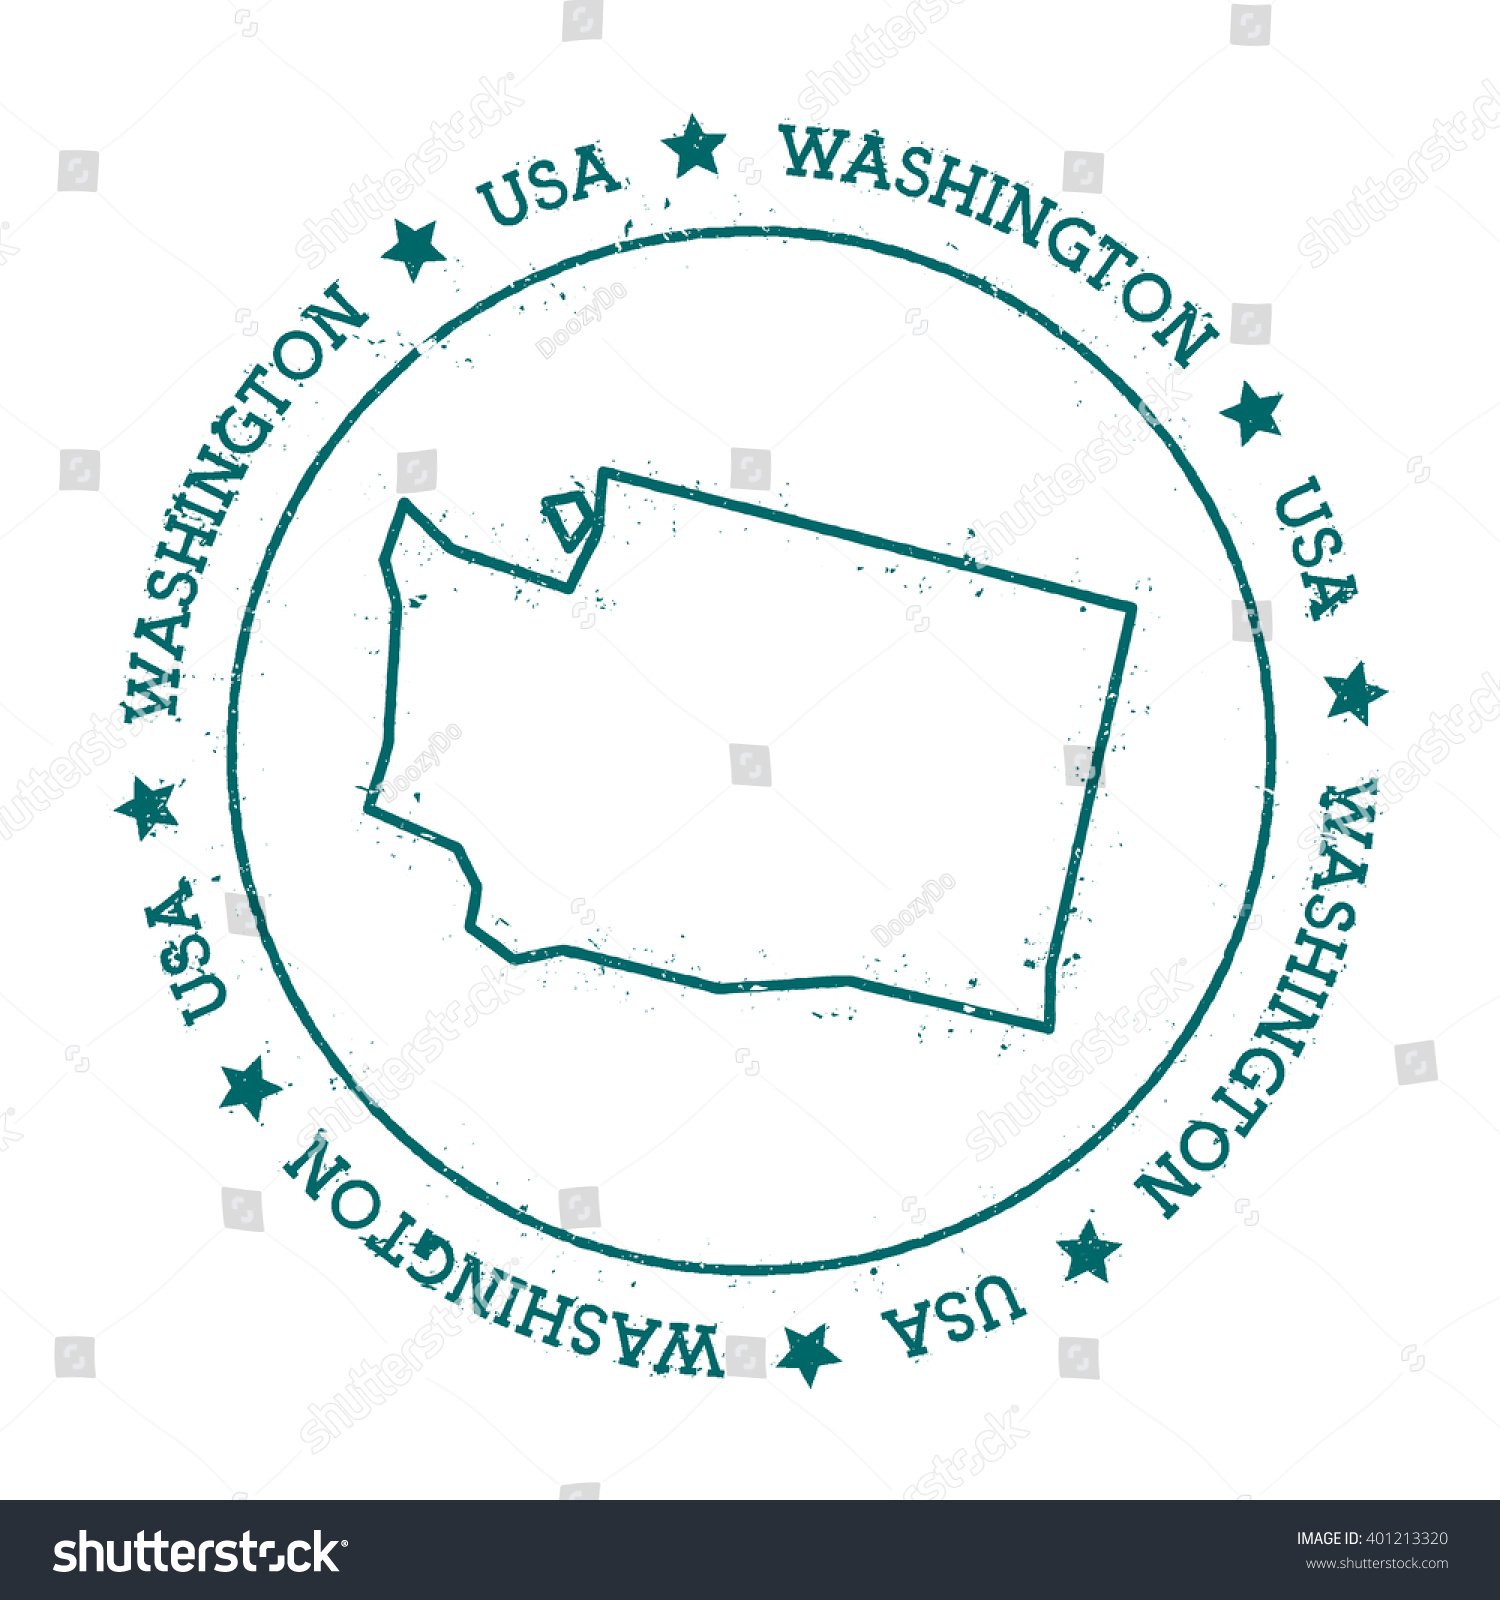 US Maps USA State Maps Free Vector Graphic Usa Map United States - 8x11 us state map